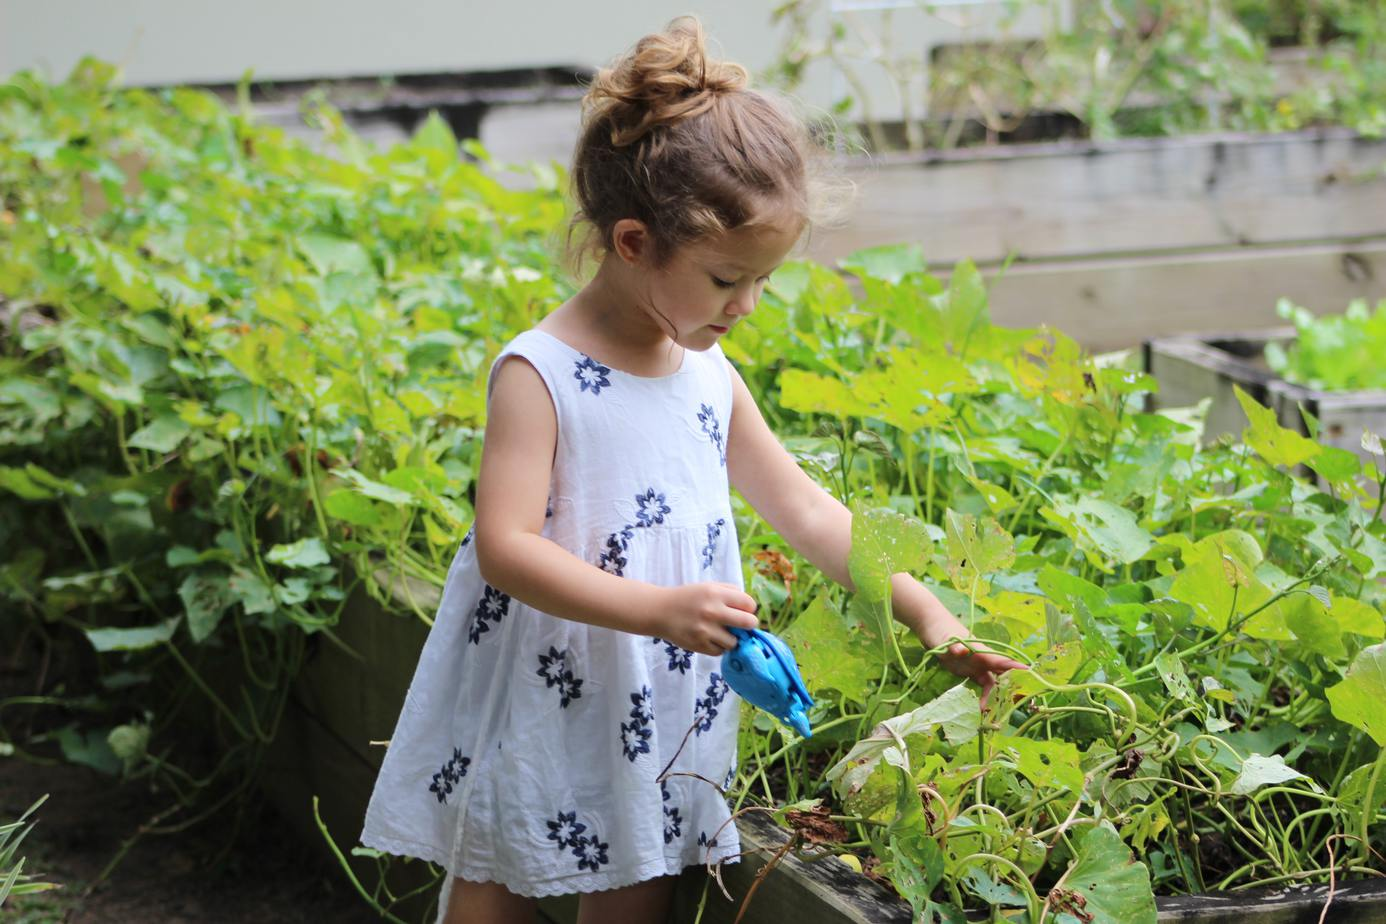 Gardening with Kids - how to get your kids help you in the garden - squash plant